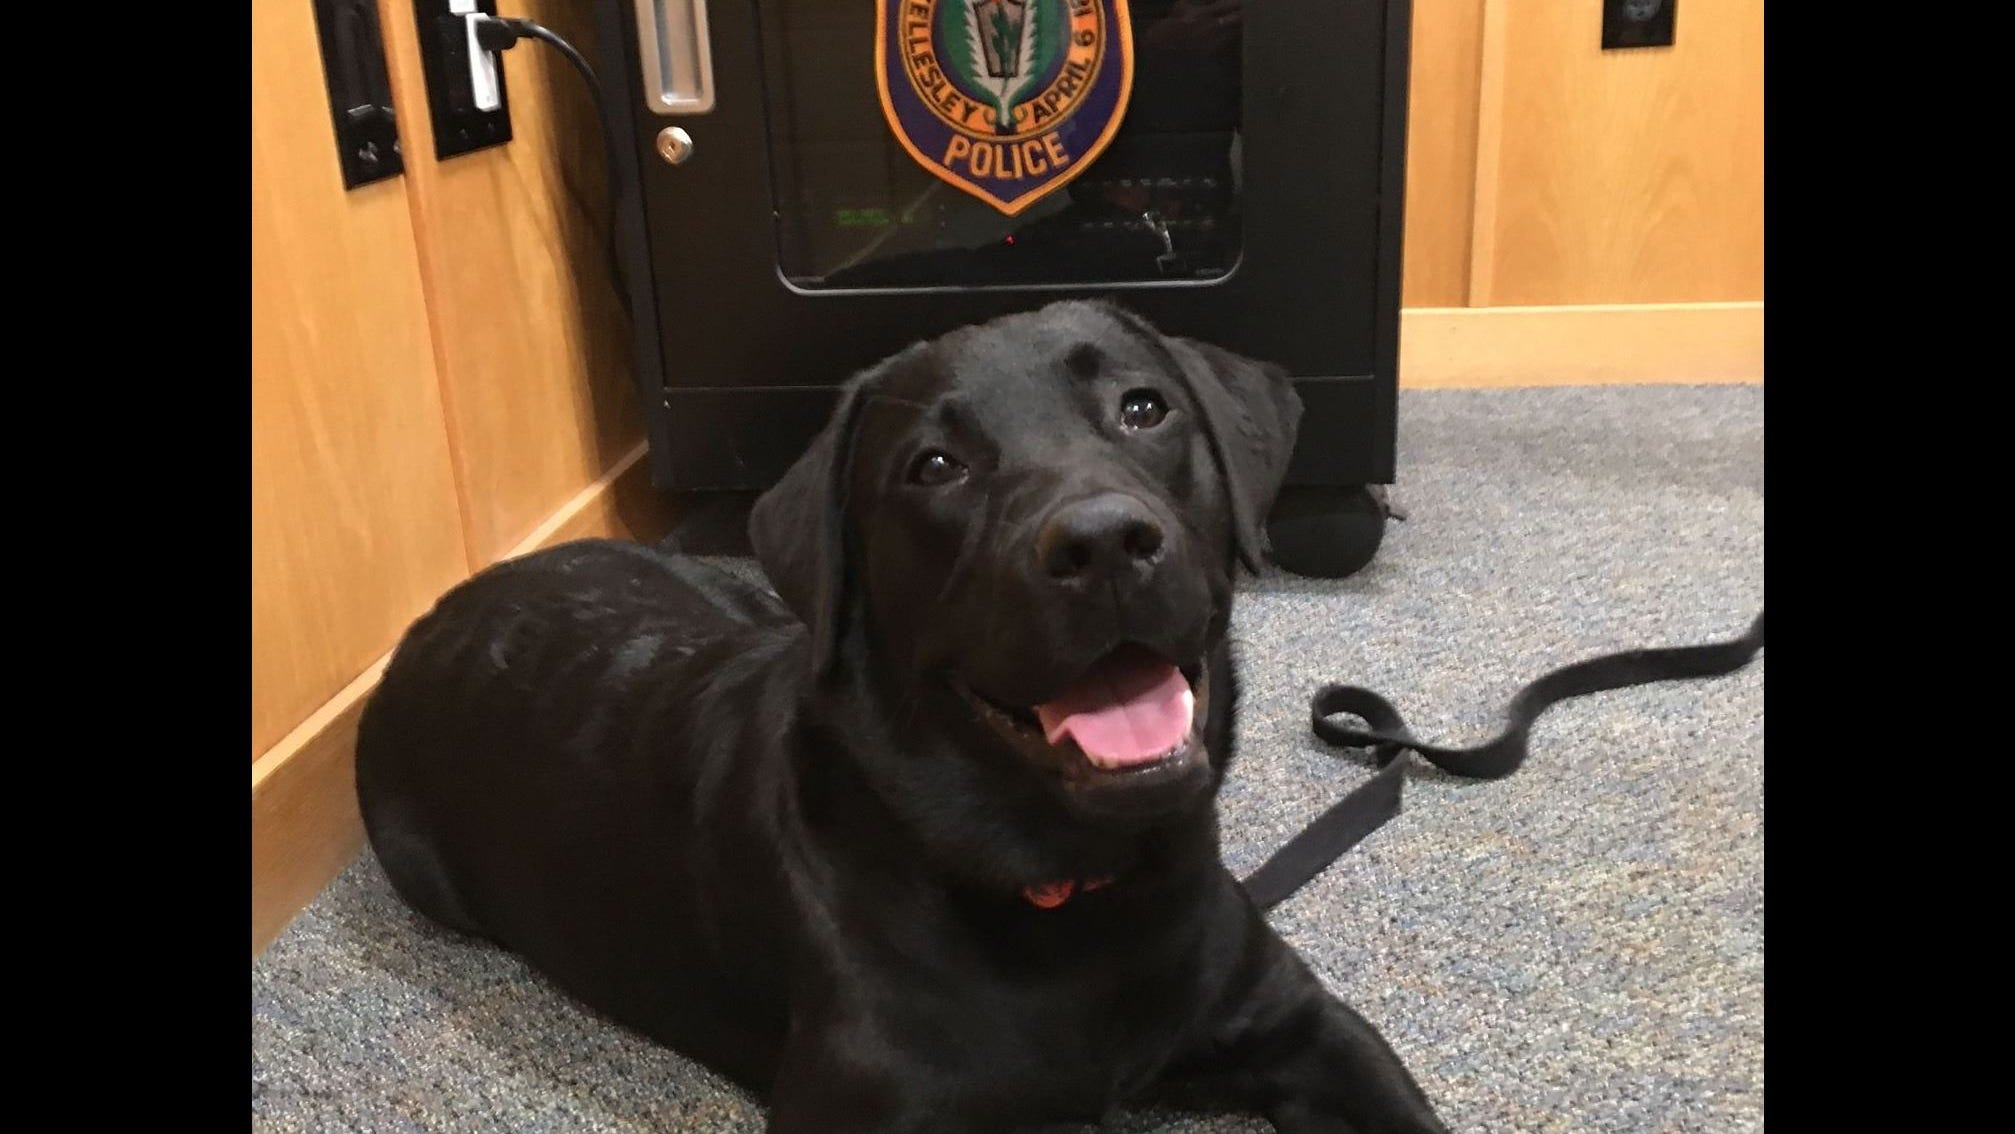 Puppy stolen from front yard in Wellesley; two Framingham residents charged